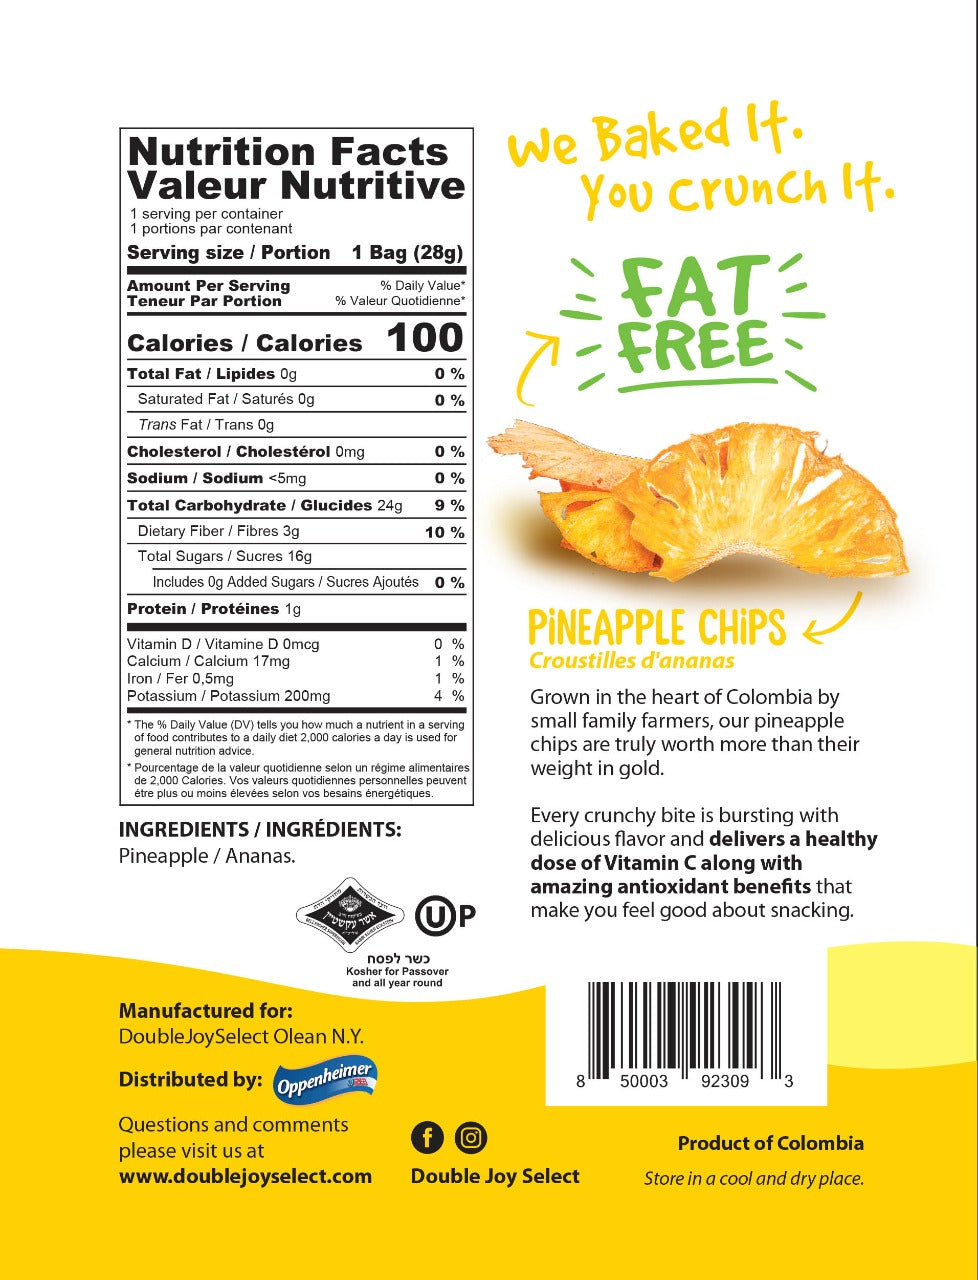 Baked Pineapple Chips  - Fat Free, Gluten Free and Vegan - 1oz - **6 pack**